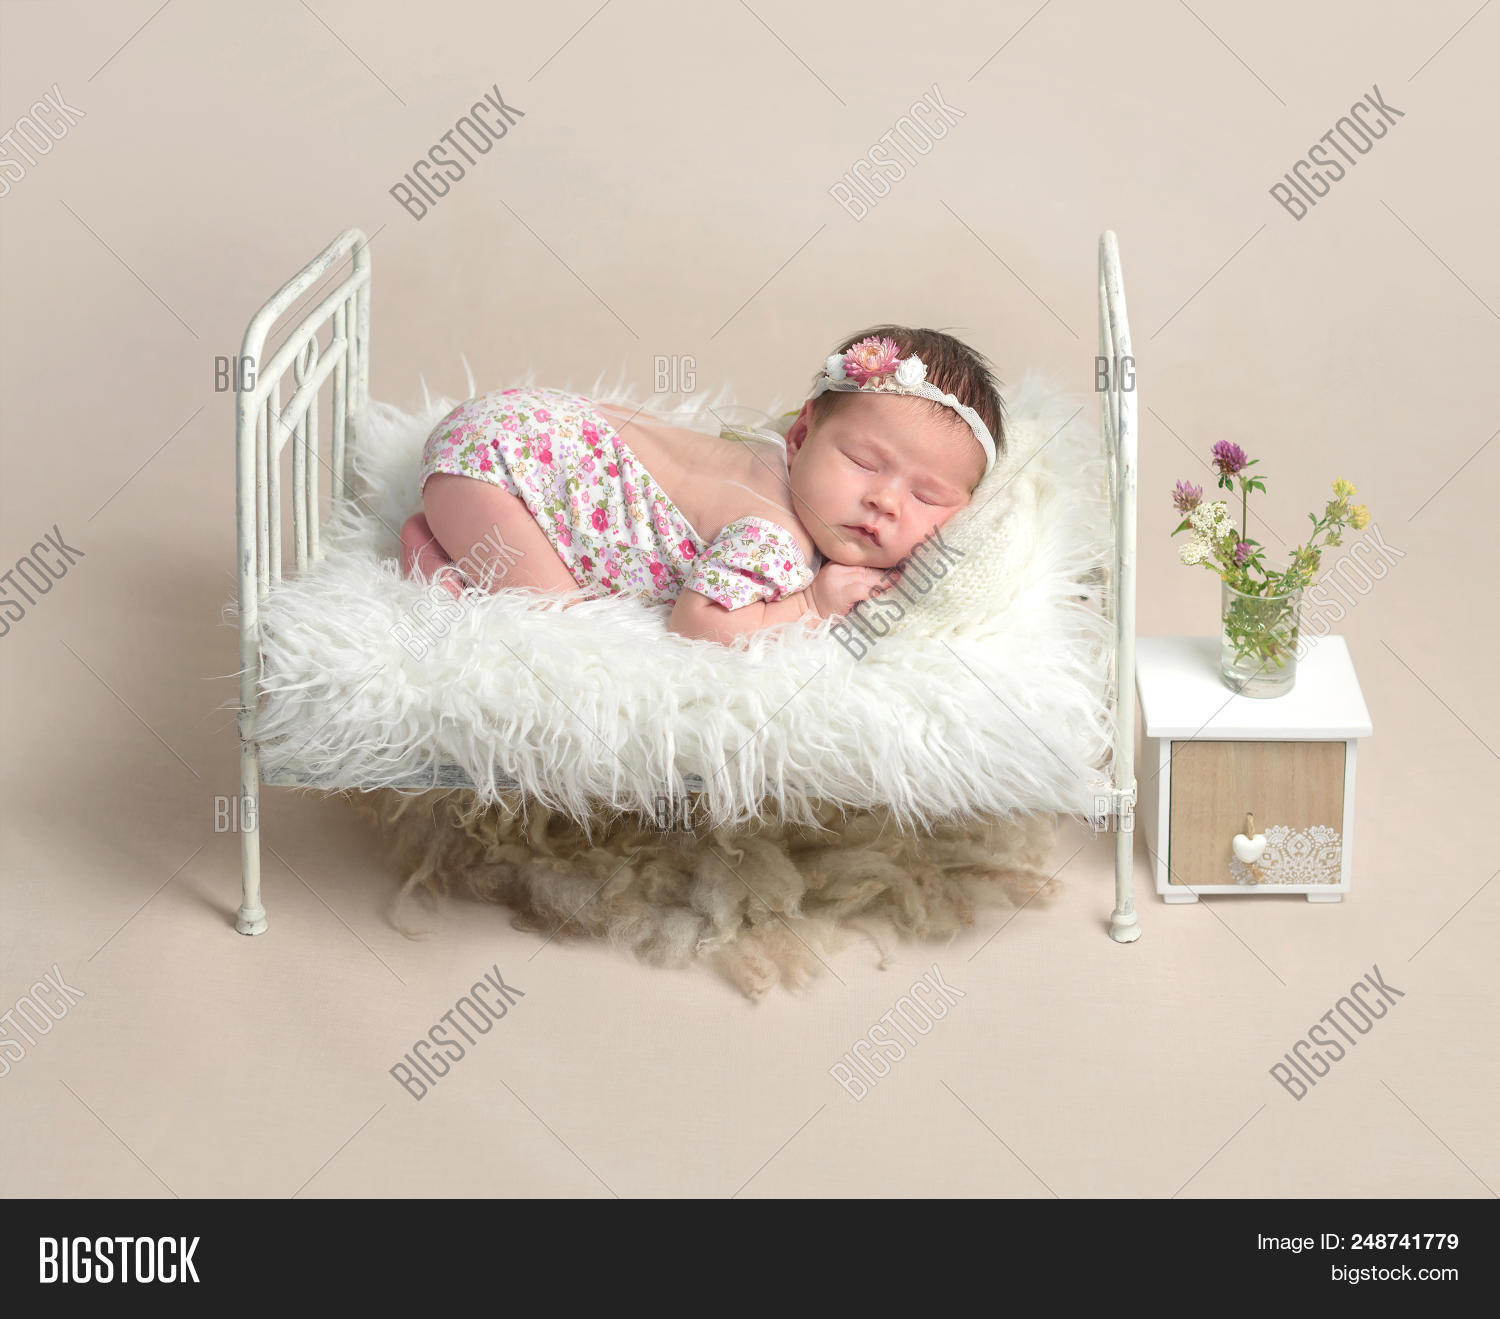 Cute Sleeping Newborn Baby Girl In The Little Bed 248741779 Image Stock Photo